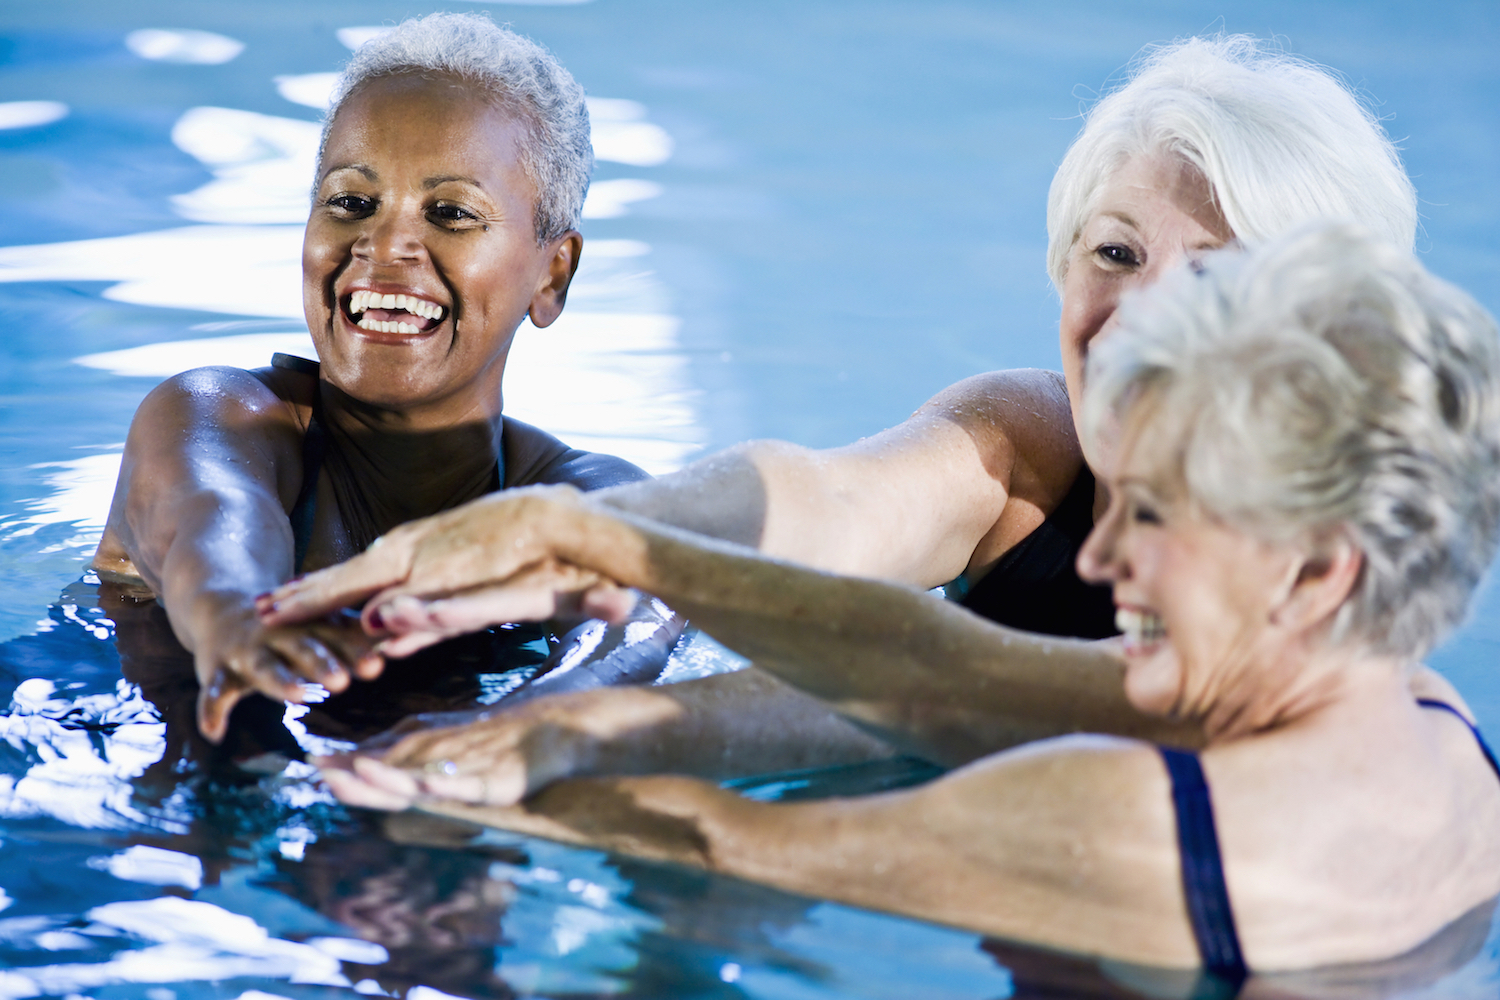 Stay active age well trafford leisure - Altrincham leisure centre swimming pool ...